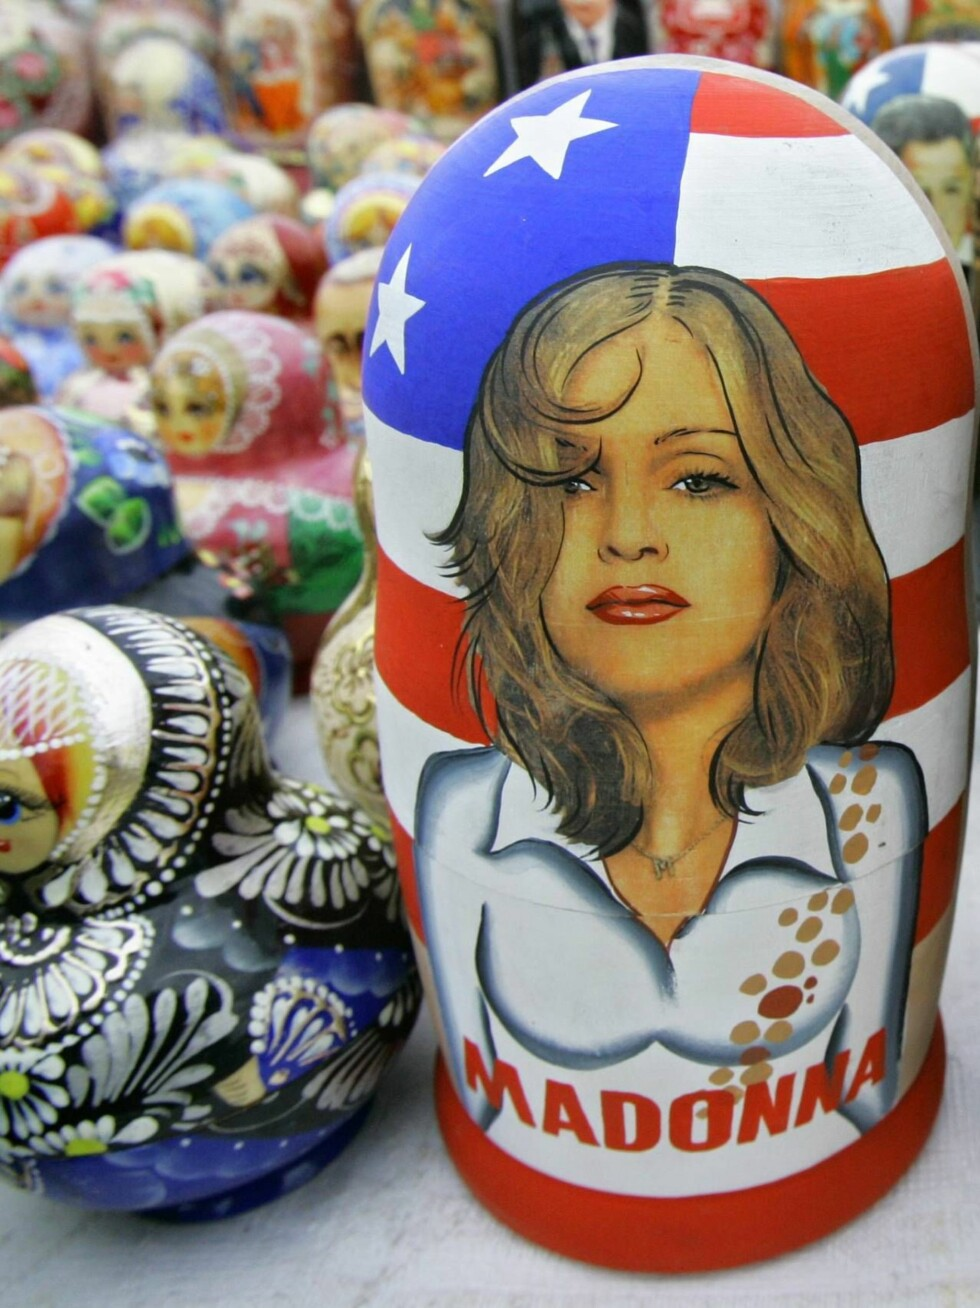 Matryoshkas, traditional  Russian wooden dolls, one of them depicting Madonna, are displayed for sale in Moscow, Monday Sept. 11, 2006. A long-awaited concert in Moscow by Madonna had become mired in security concerns. After negotiations _ spiced up by pr Foto: AP/Scanpix